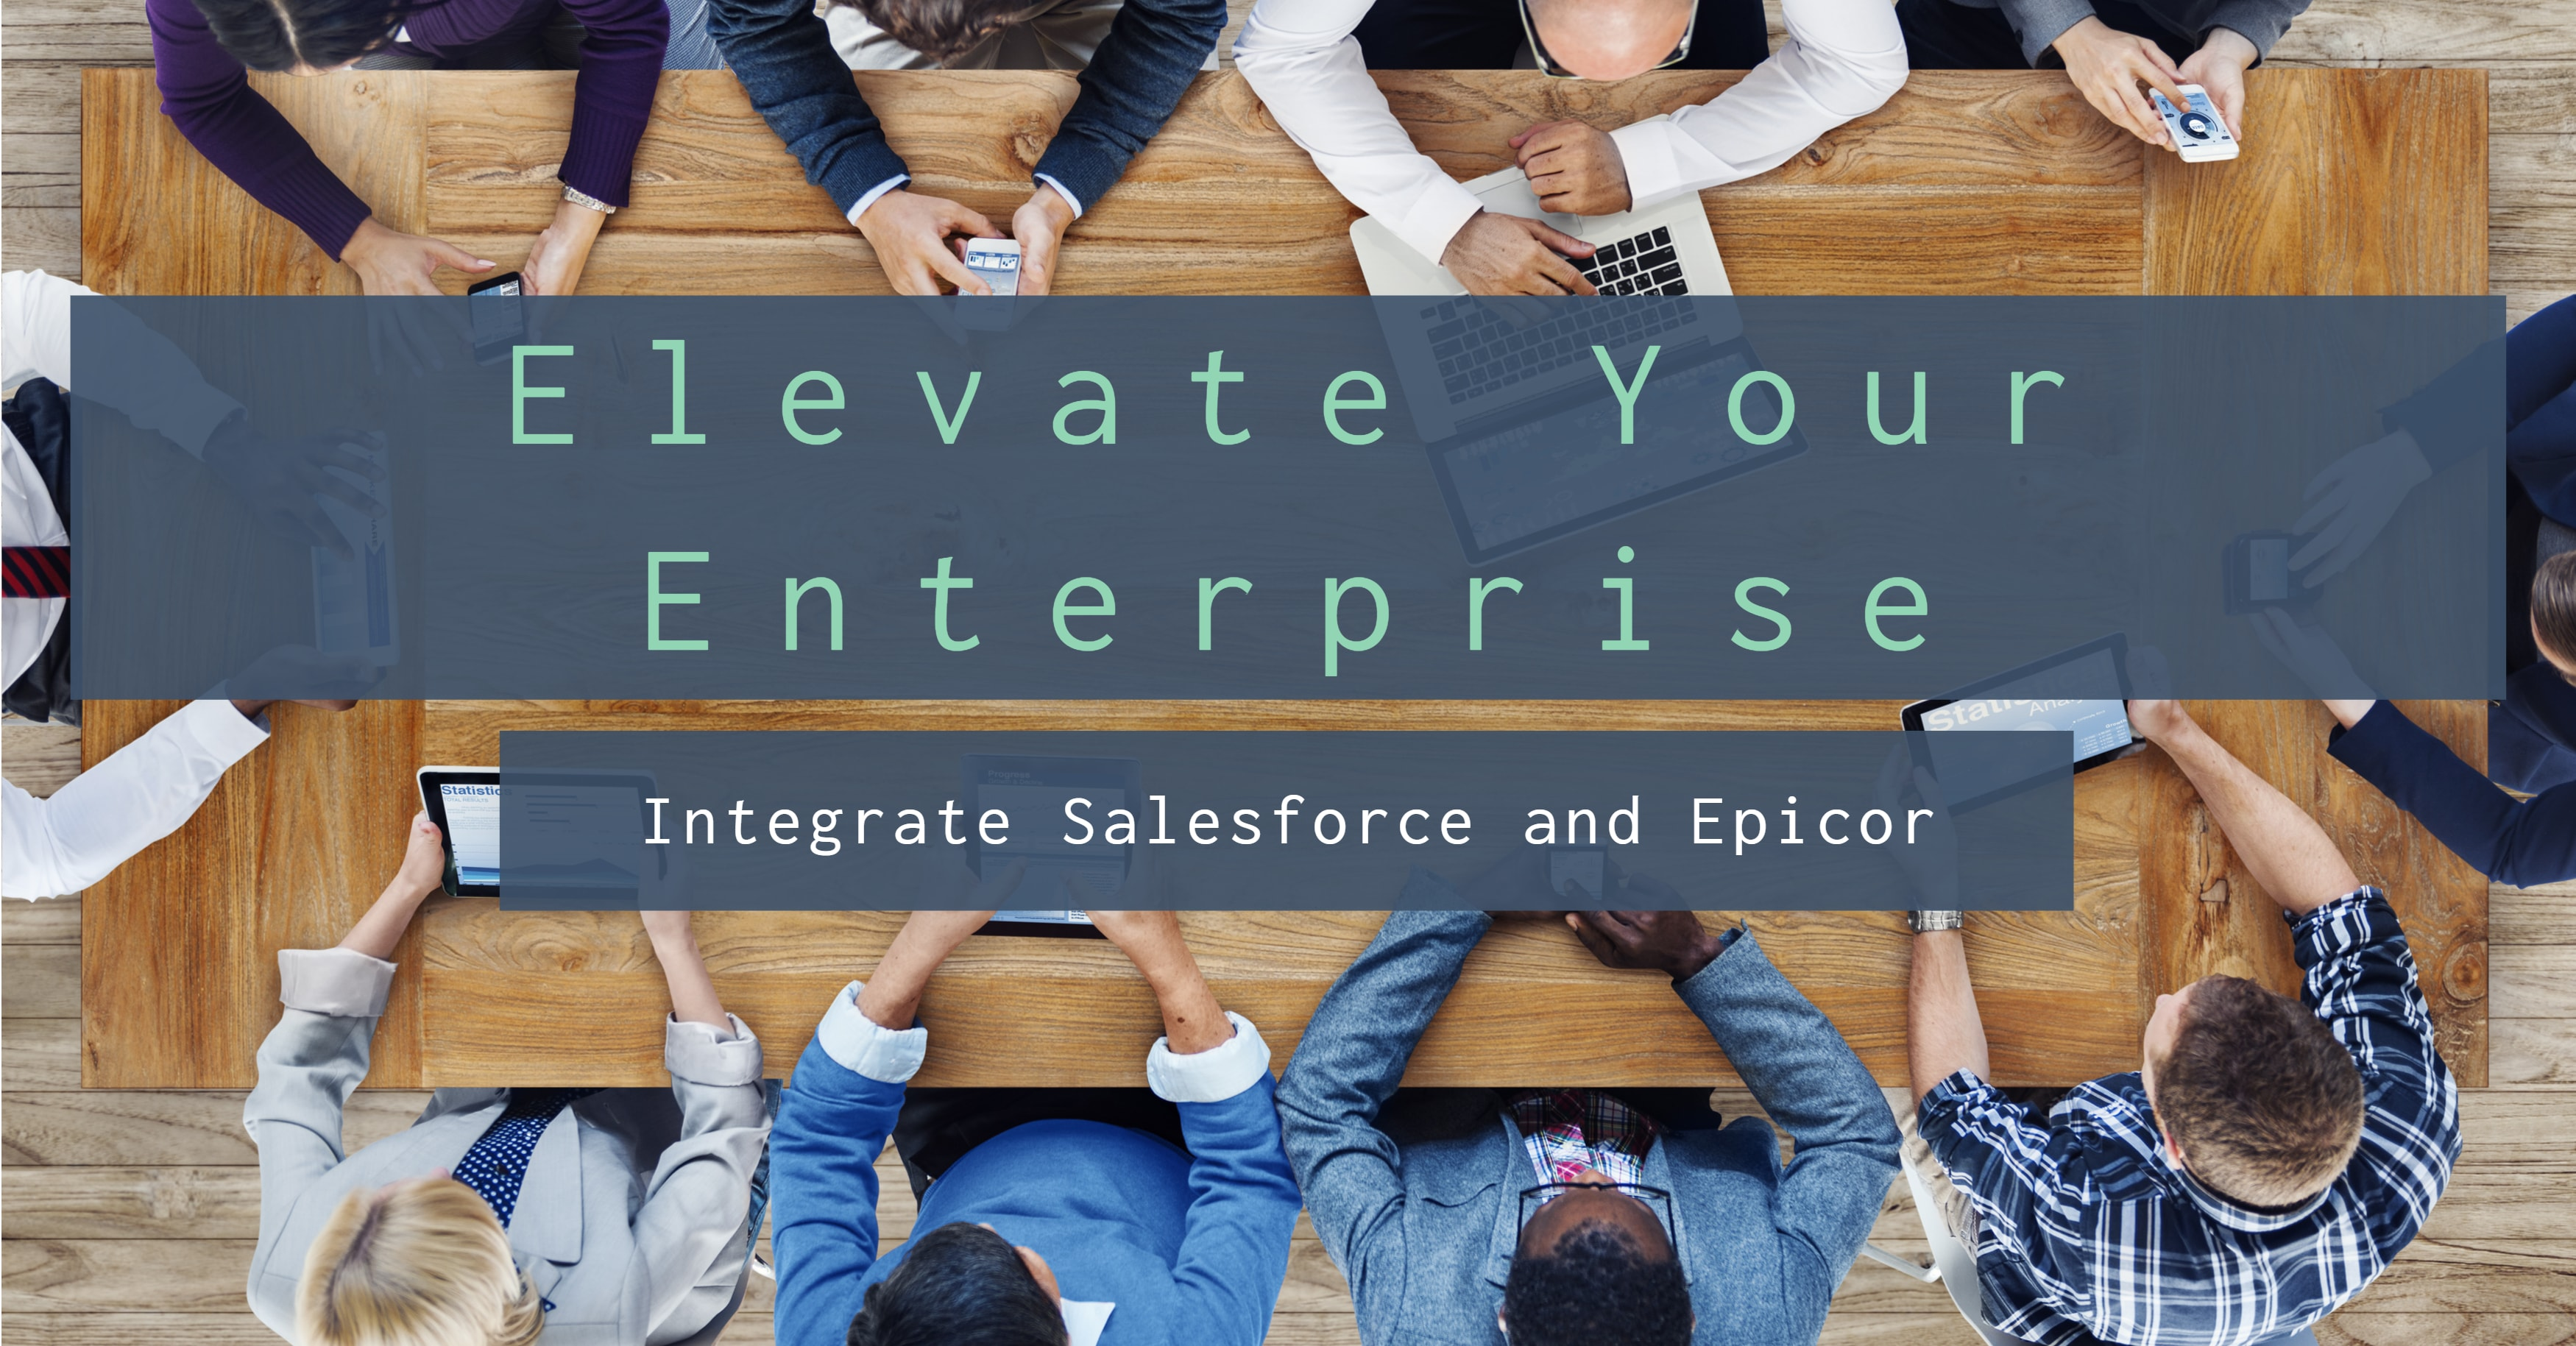 Elevate Your Enterprise: Integrate Salesforce and Epicor